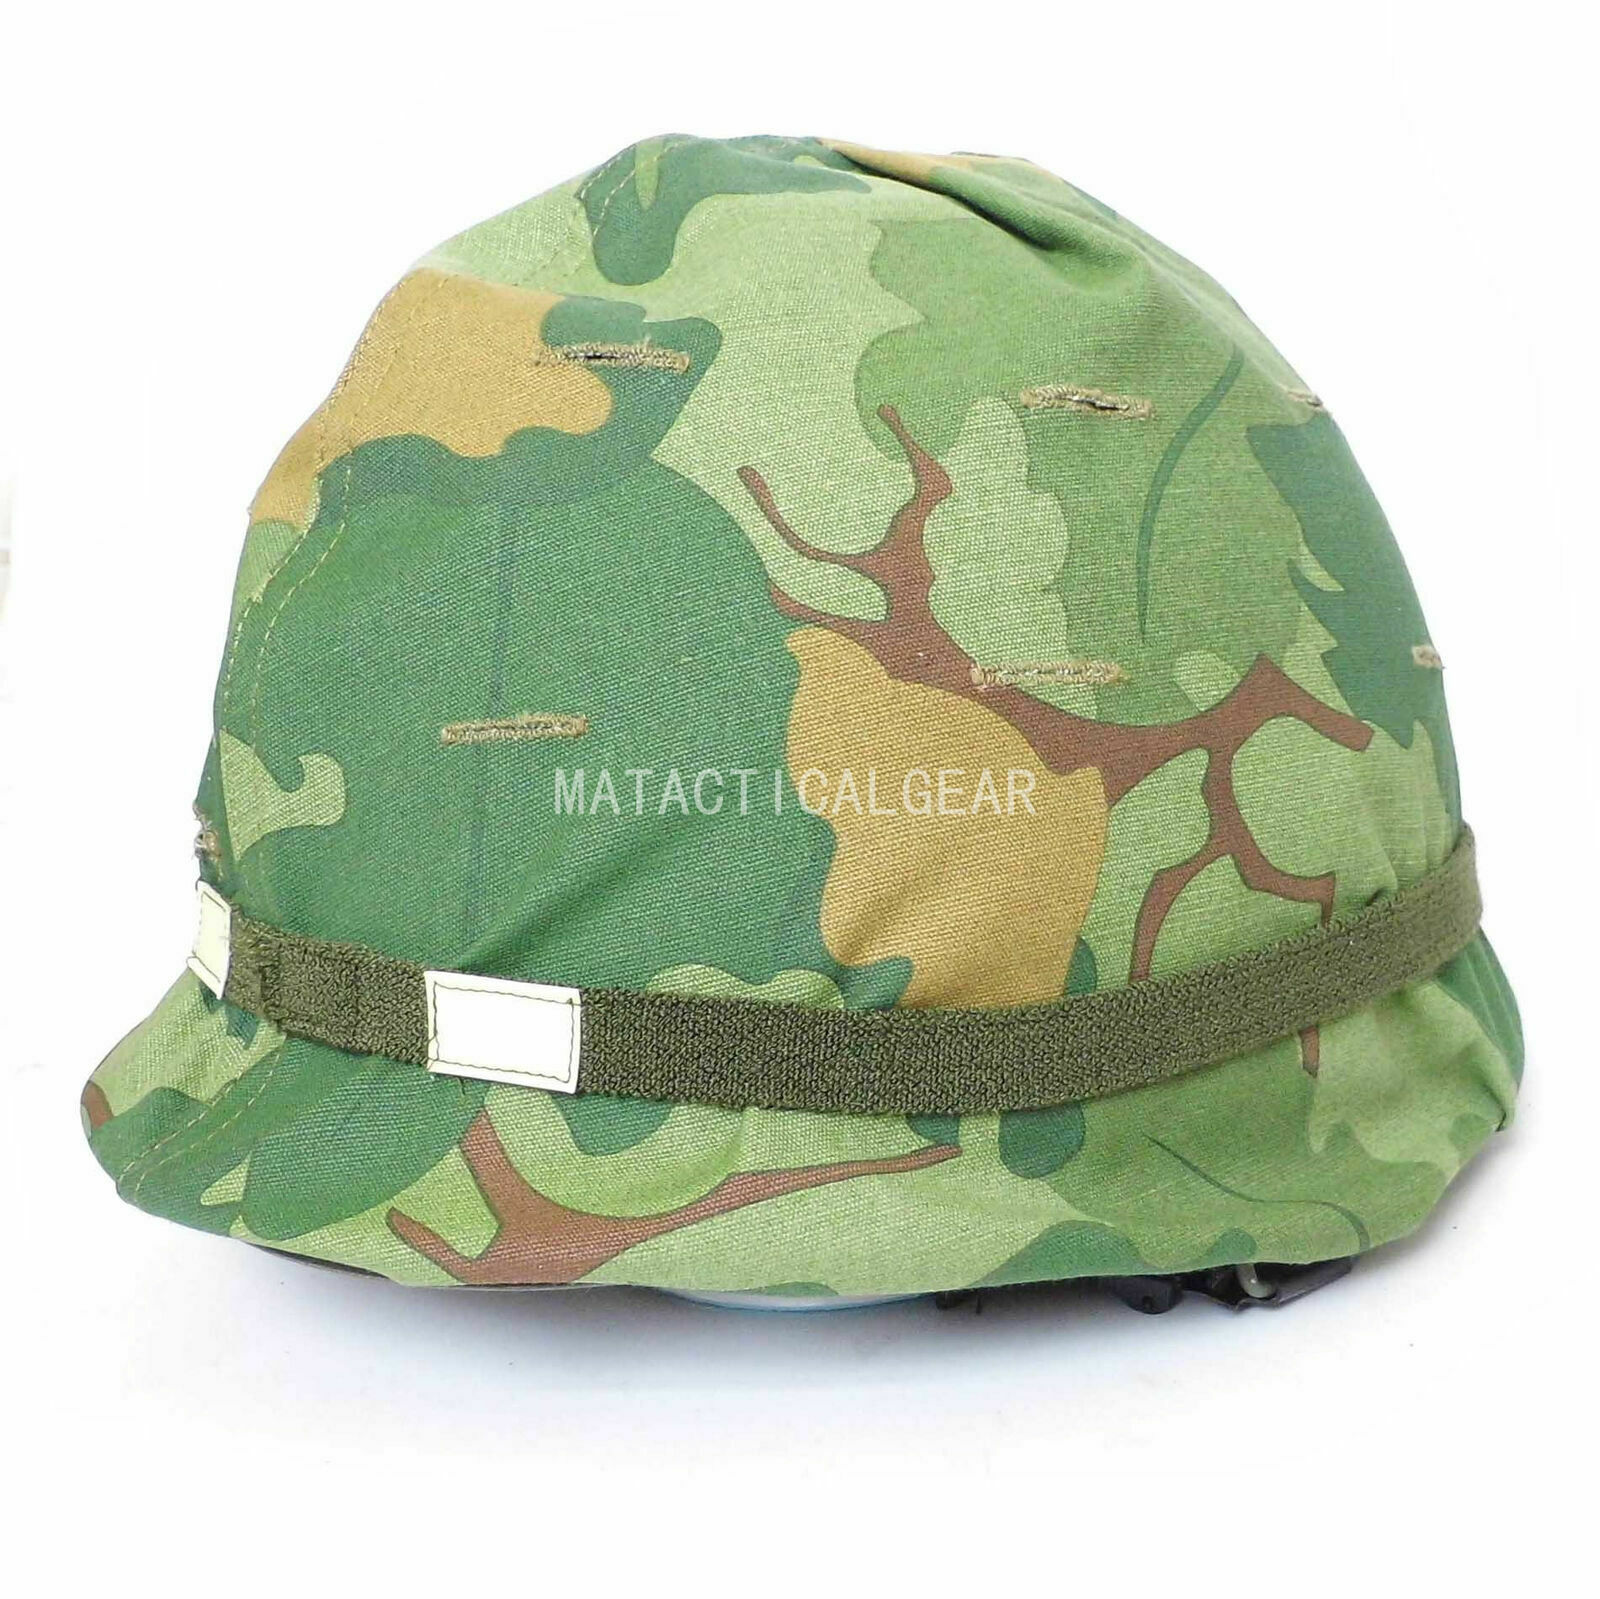 Vietnam War Us Army M1 Soldier Helmet Full Set With Mitchel Camouflage Cover Sports Souvenirs Aliexpress